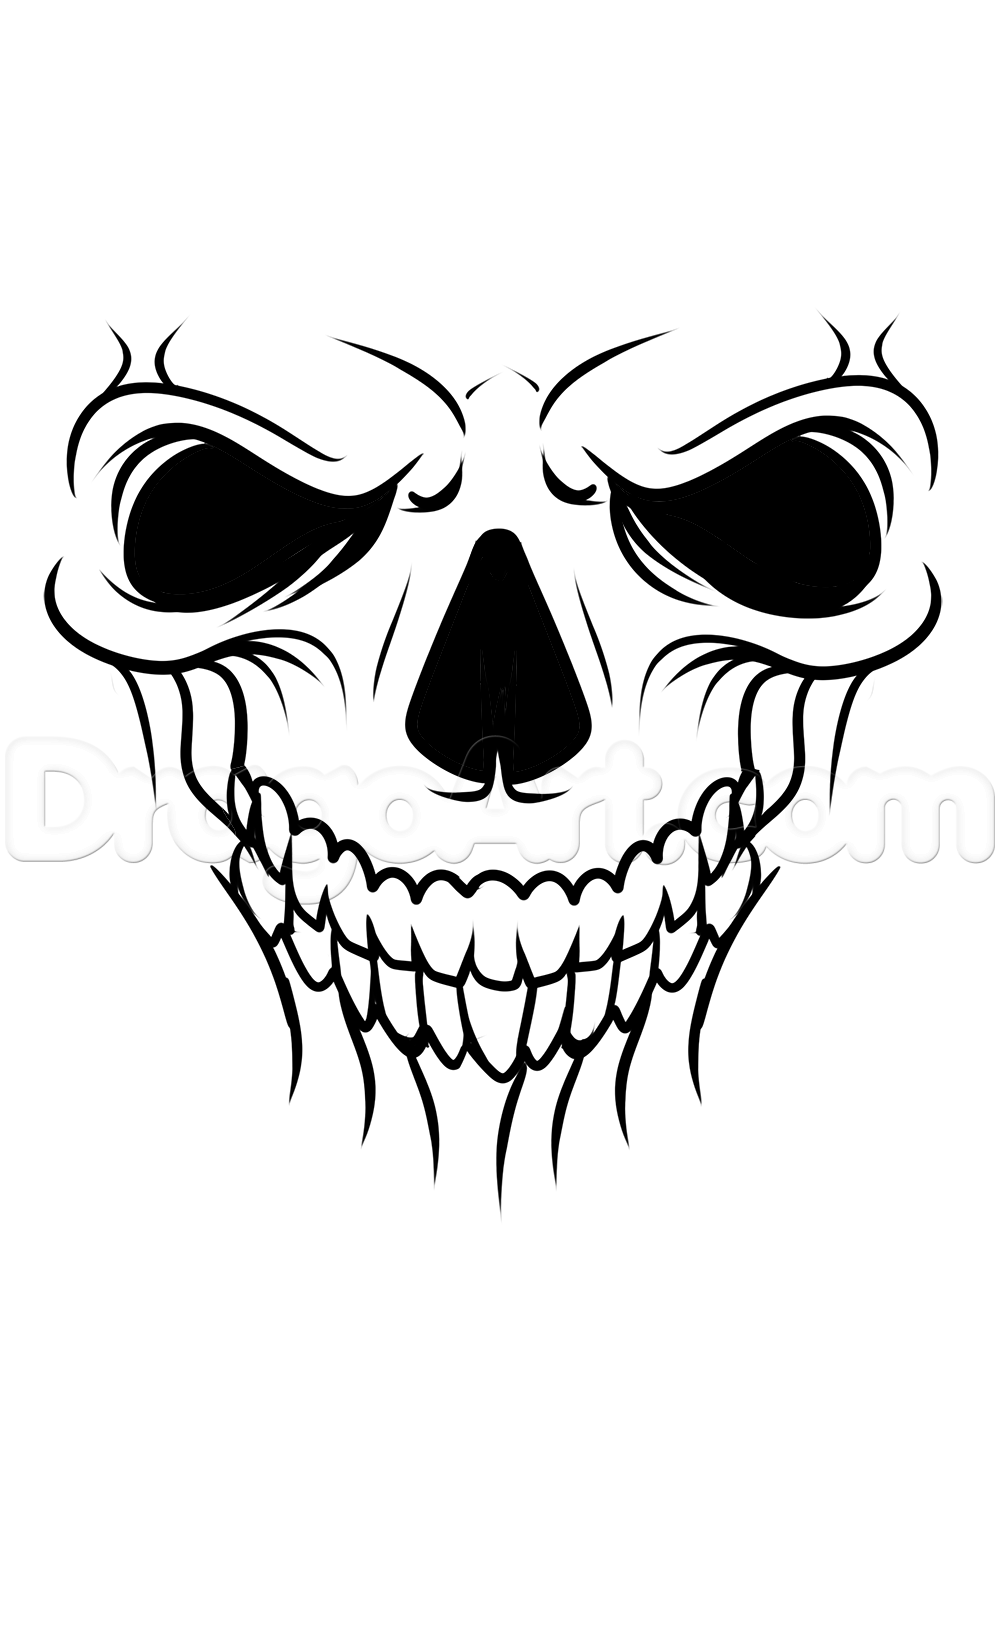 A Skull Tattoo Drawing Tutorial By Dawn With Images Tattoo Drawings Skull Drawing Drawings